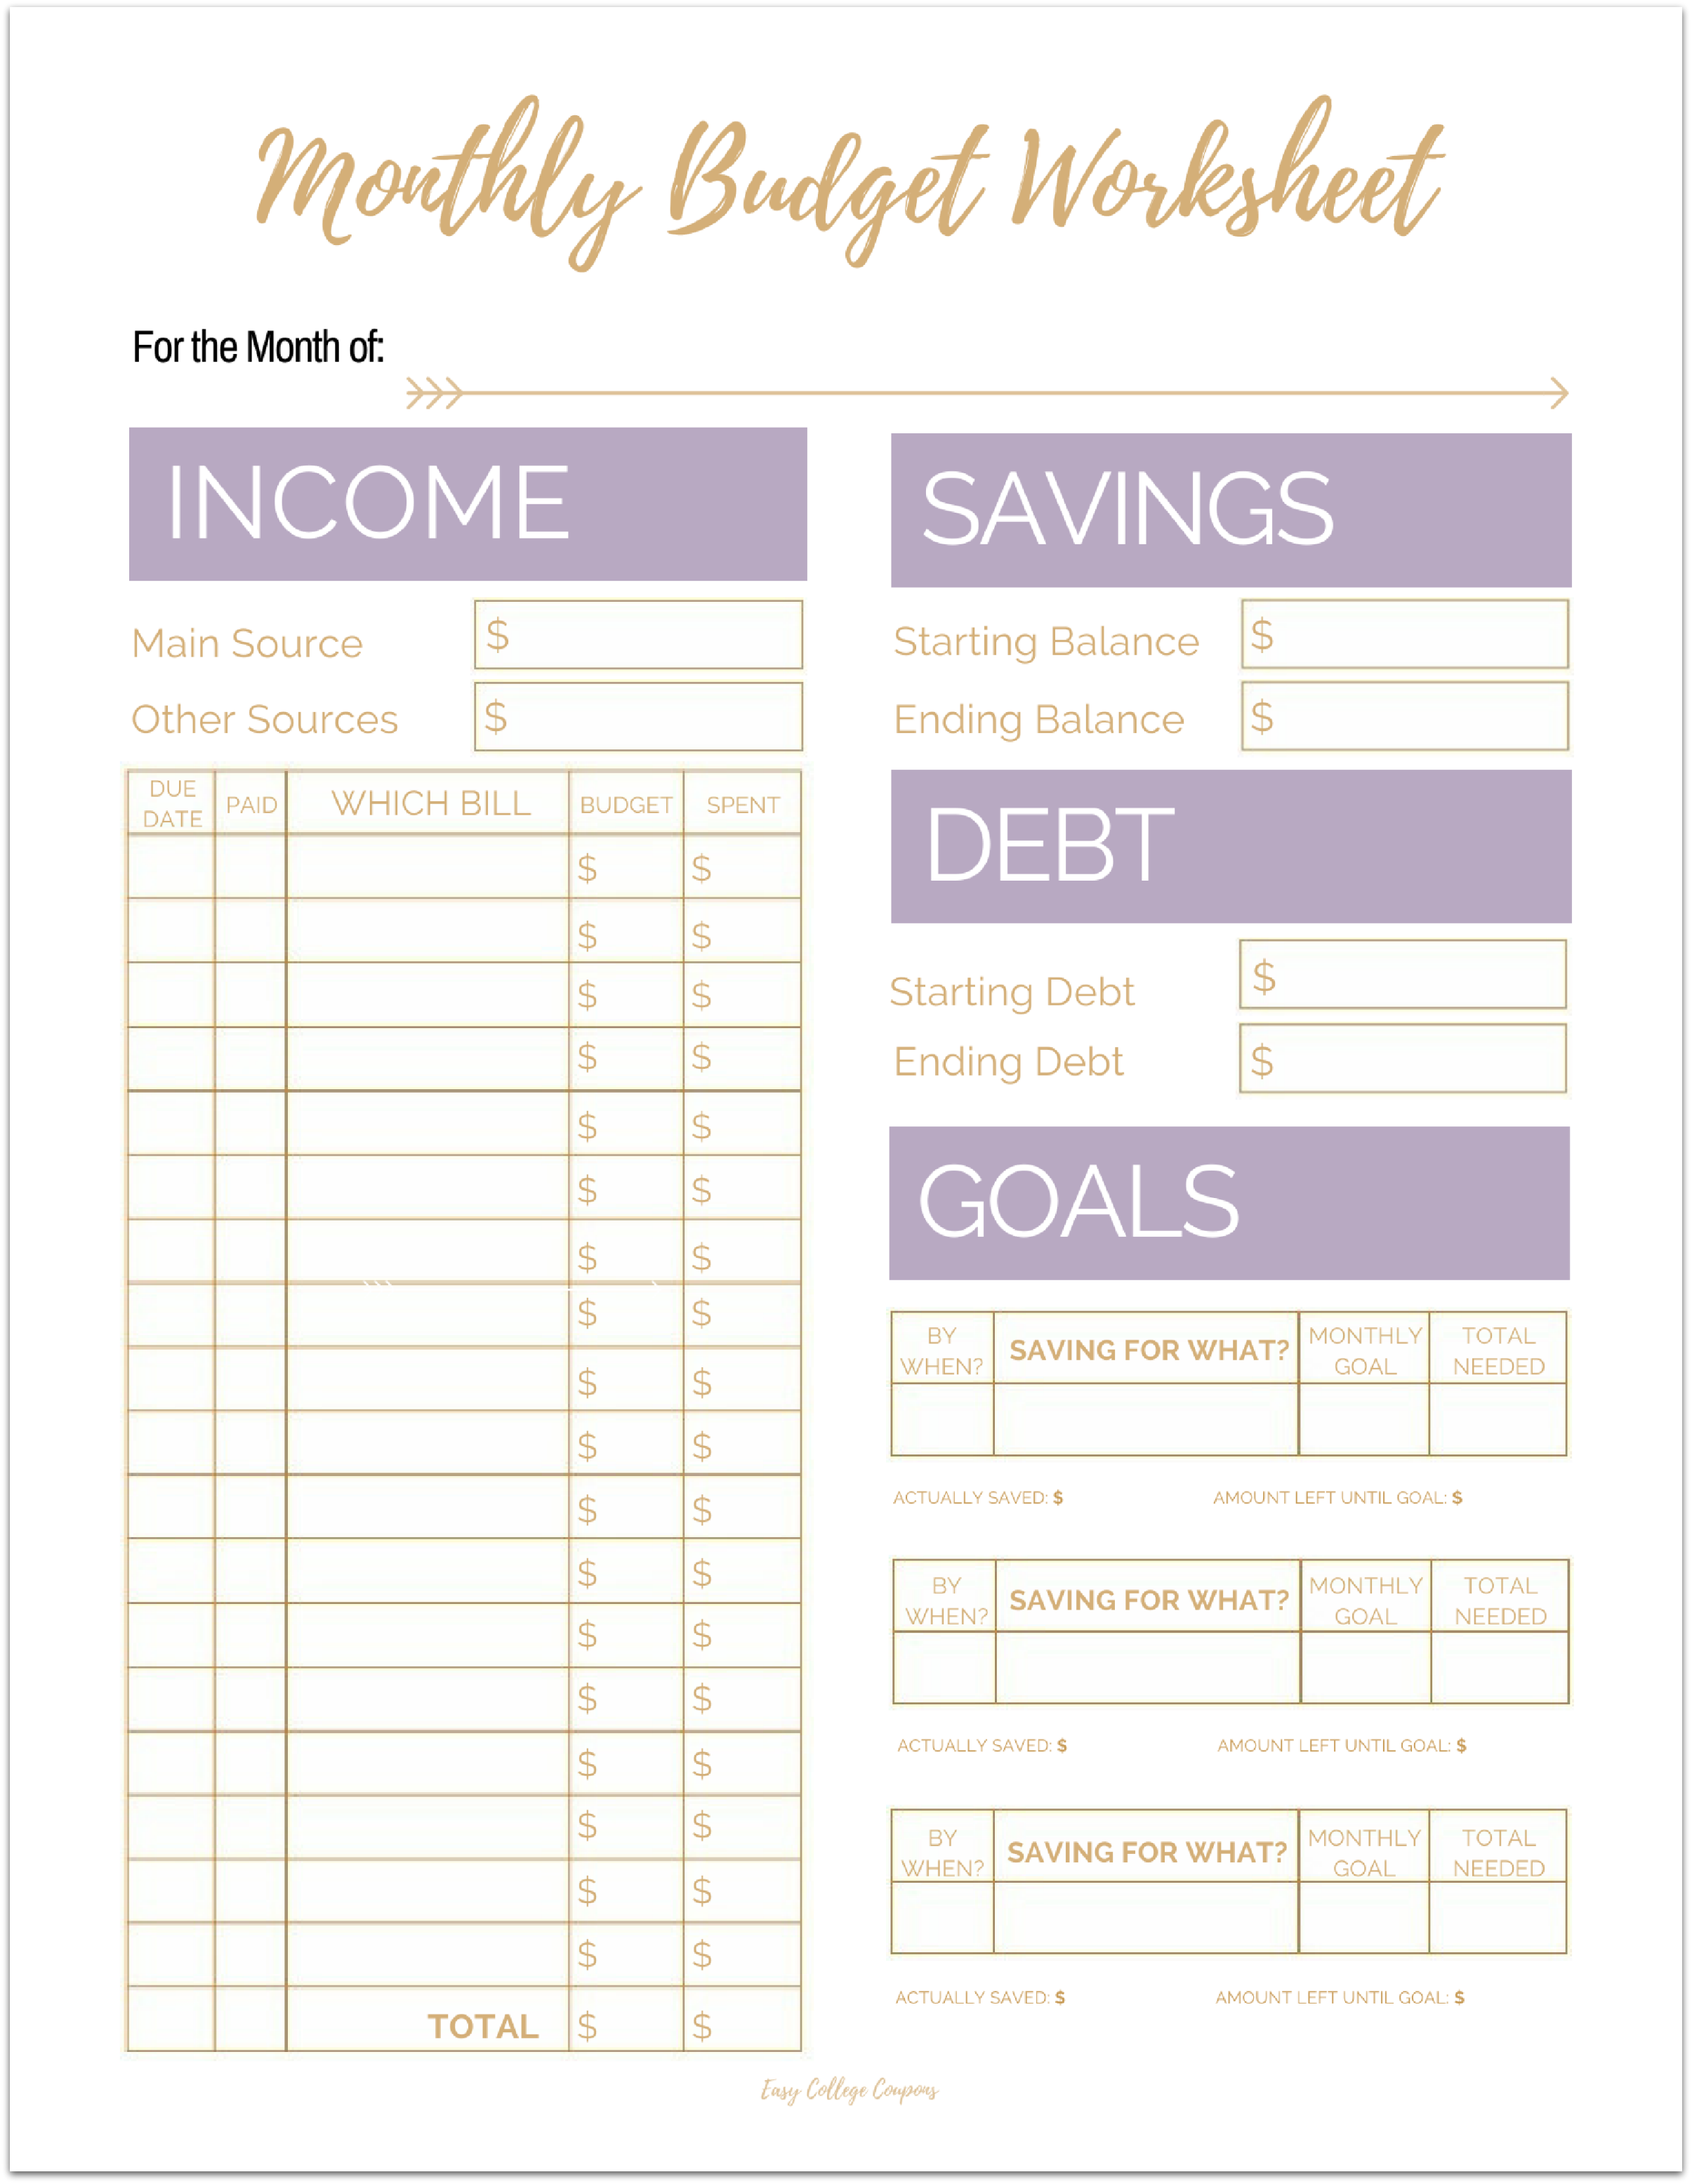 worksheet Free Printable Monthly Budget Worksheet free printable monthly budget worksheets the enter your information below to get password for my resource library